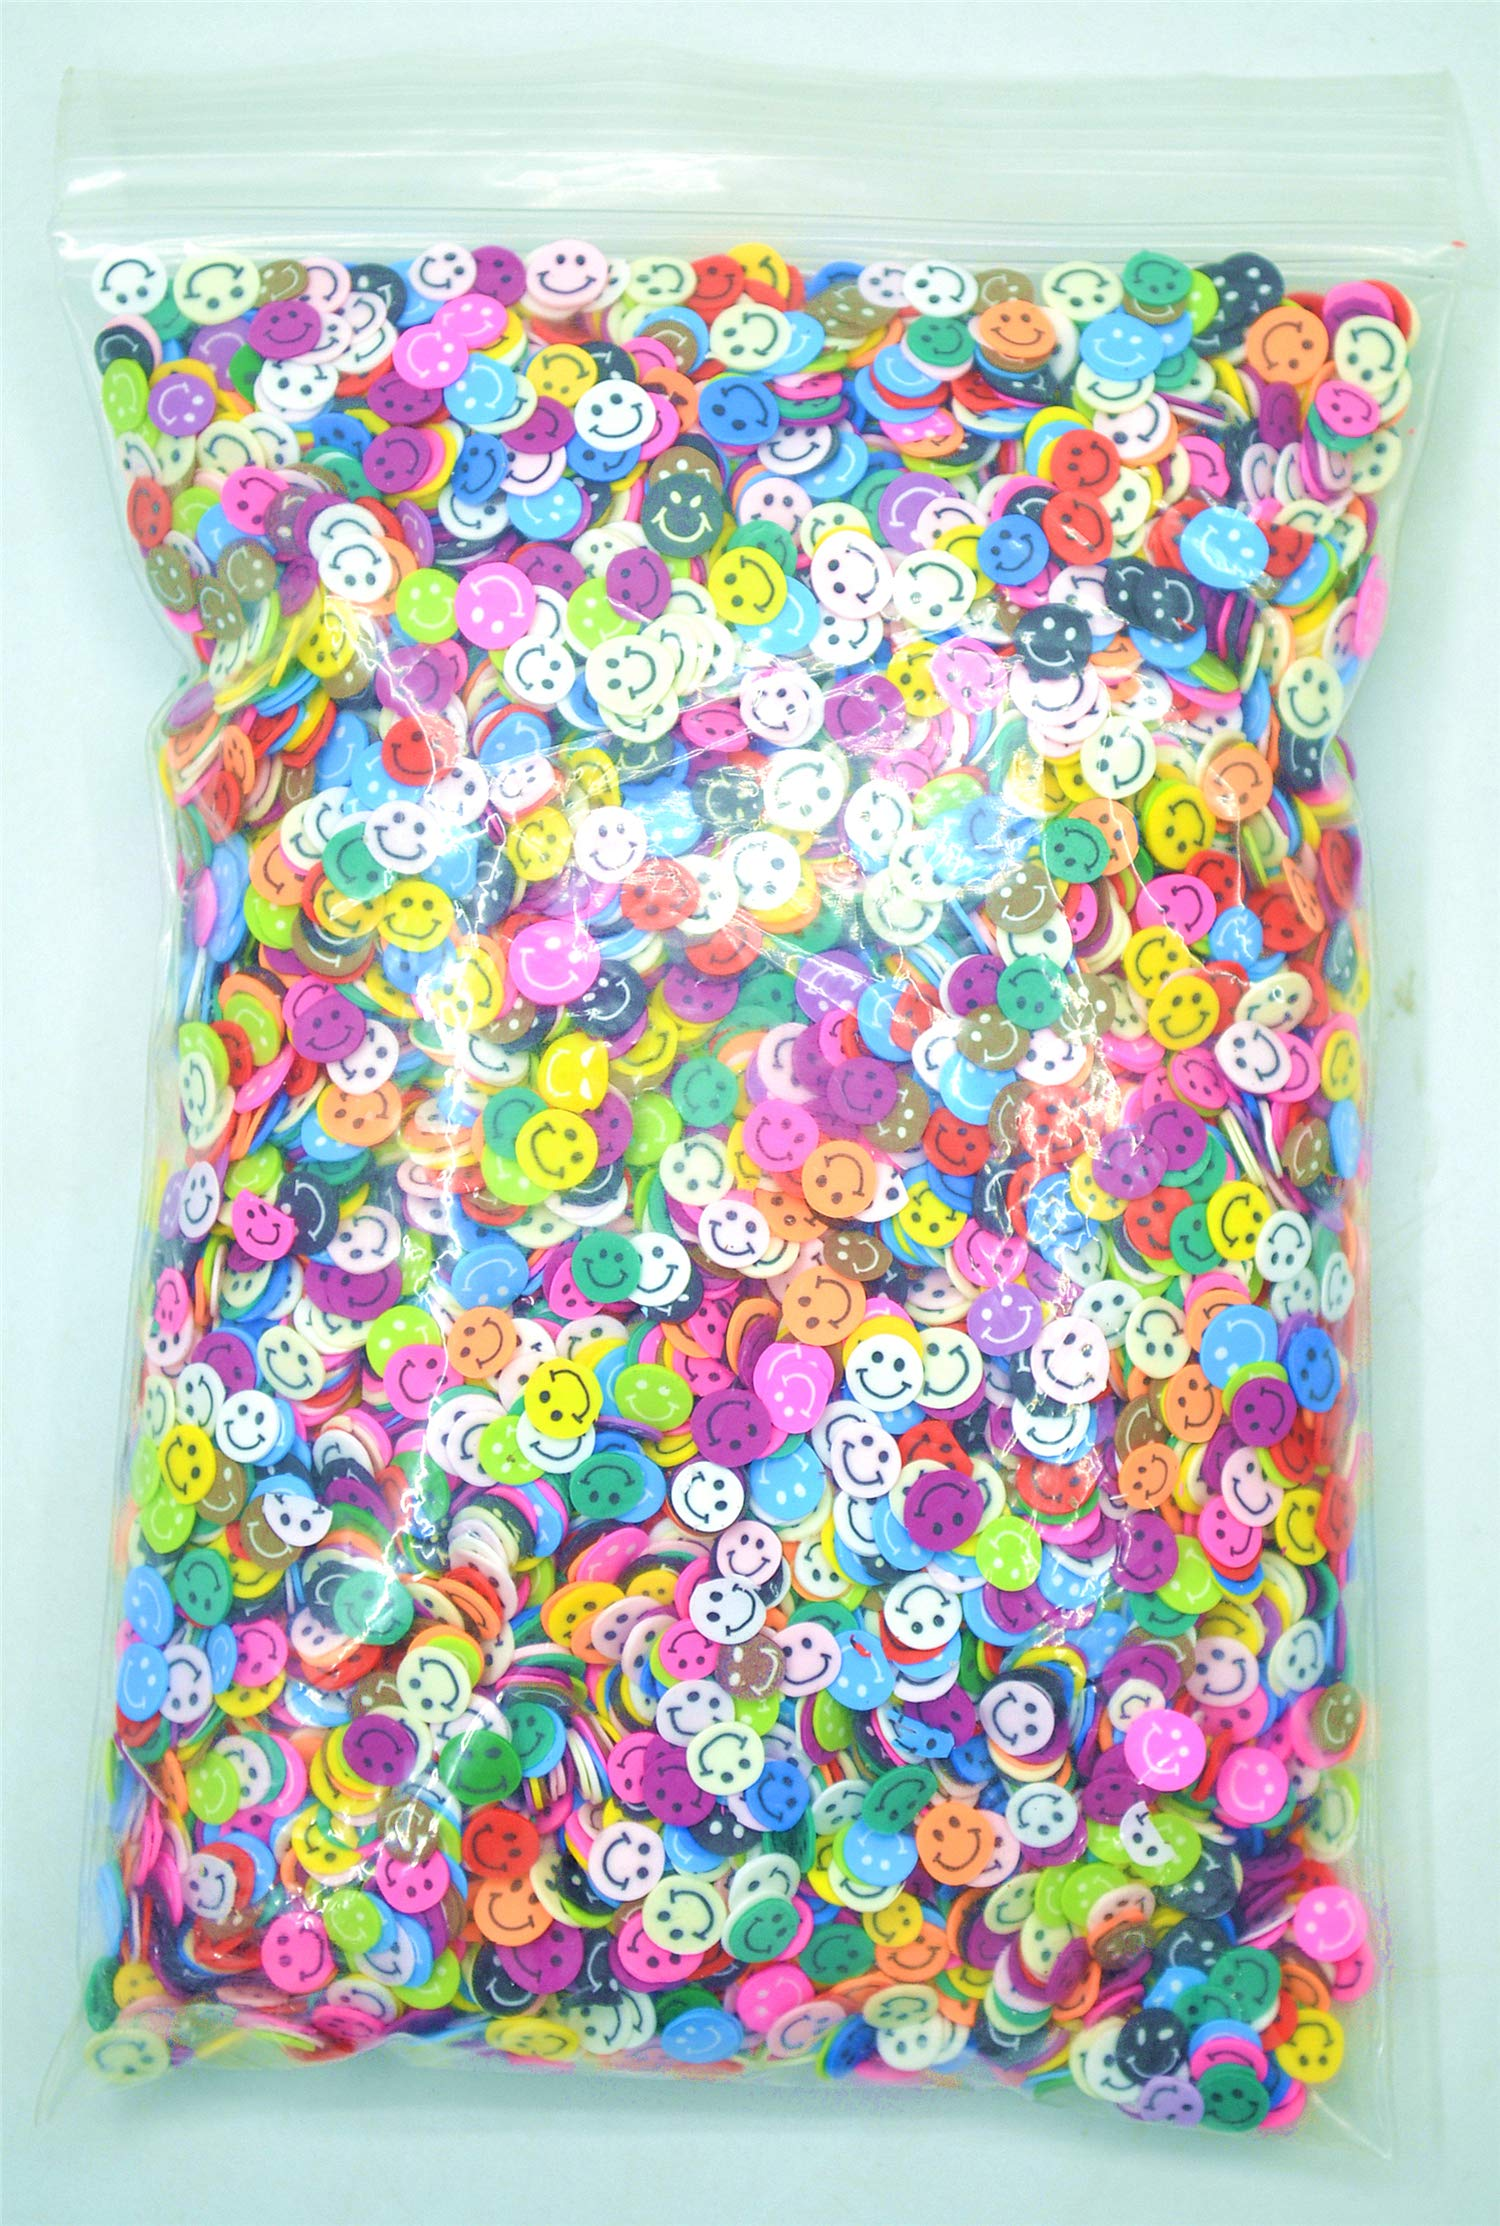 VolksRose 10000 Pcs Soft Clay 3D Nail Art Canes Stickers Mini Designs Multi-colored Smiley Face Assorted Pattern Slice Cellphone Face and More Decorations Tools #5 by VolksRose